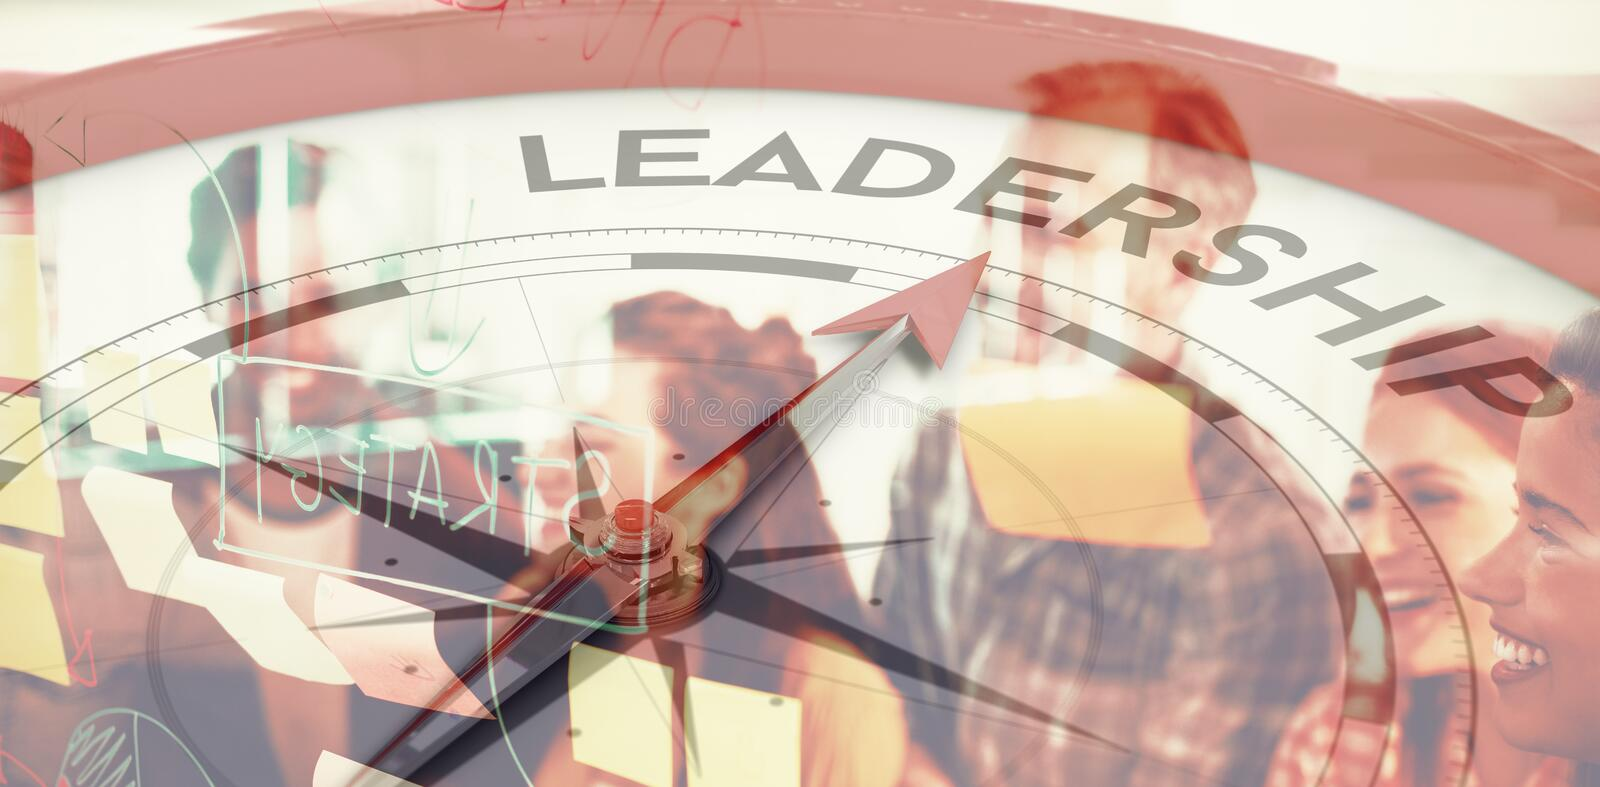 Composite image of compass pointing to leadership vector illustration